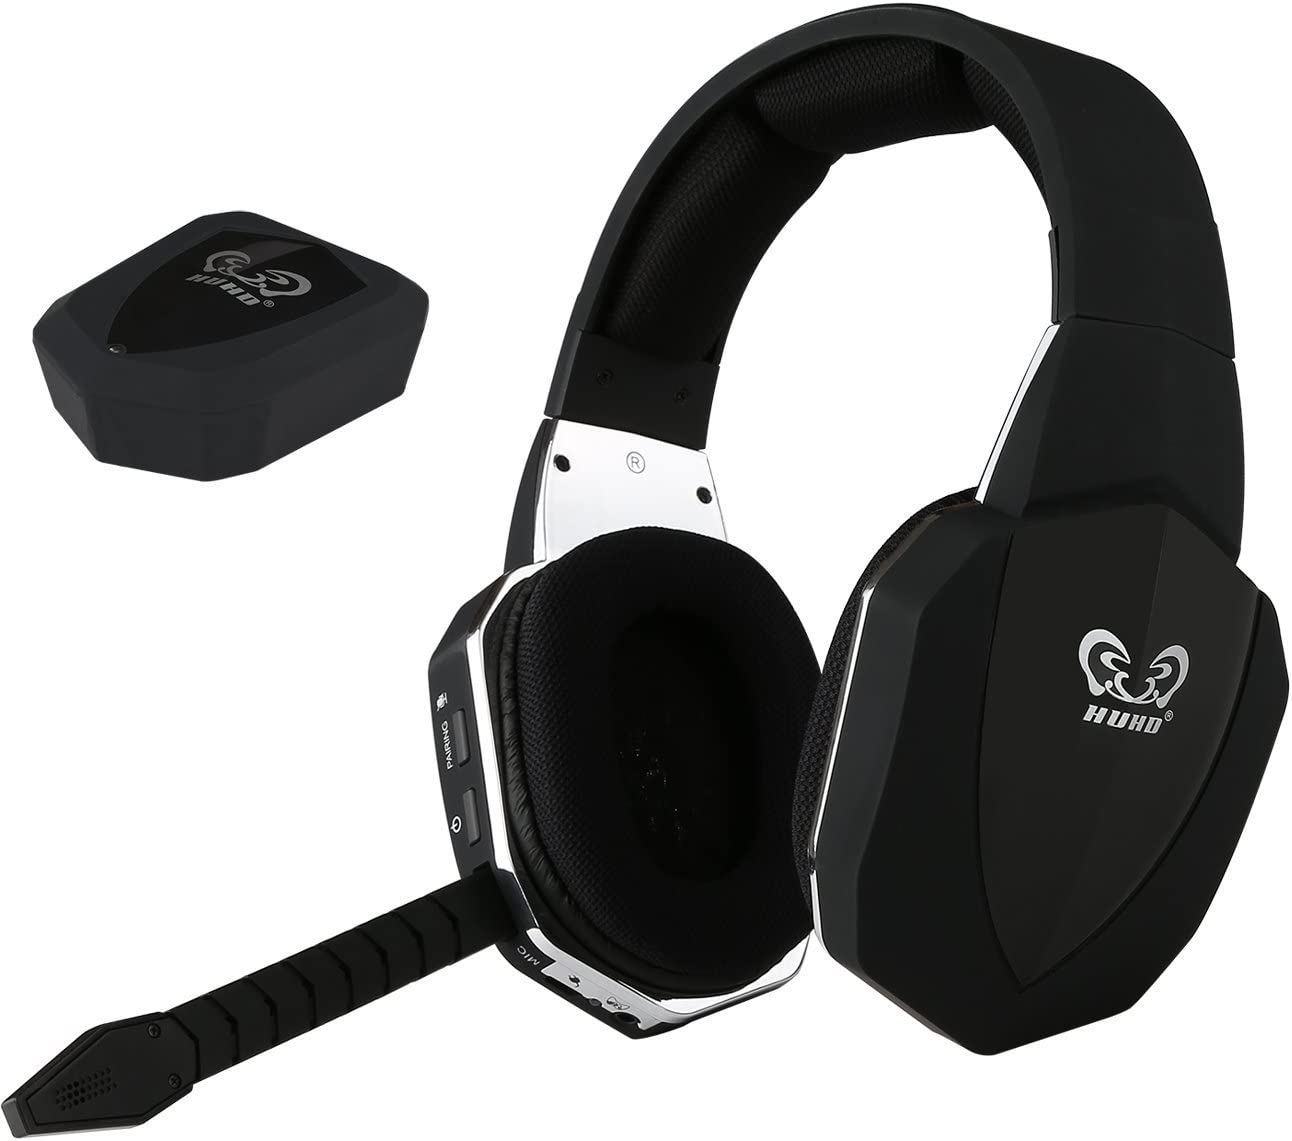 2.4G Optical Wireless Headset for PS4